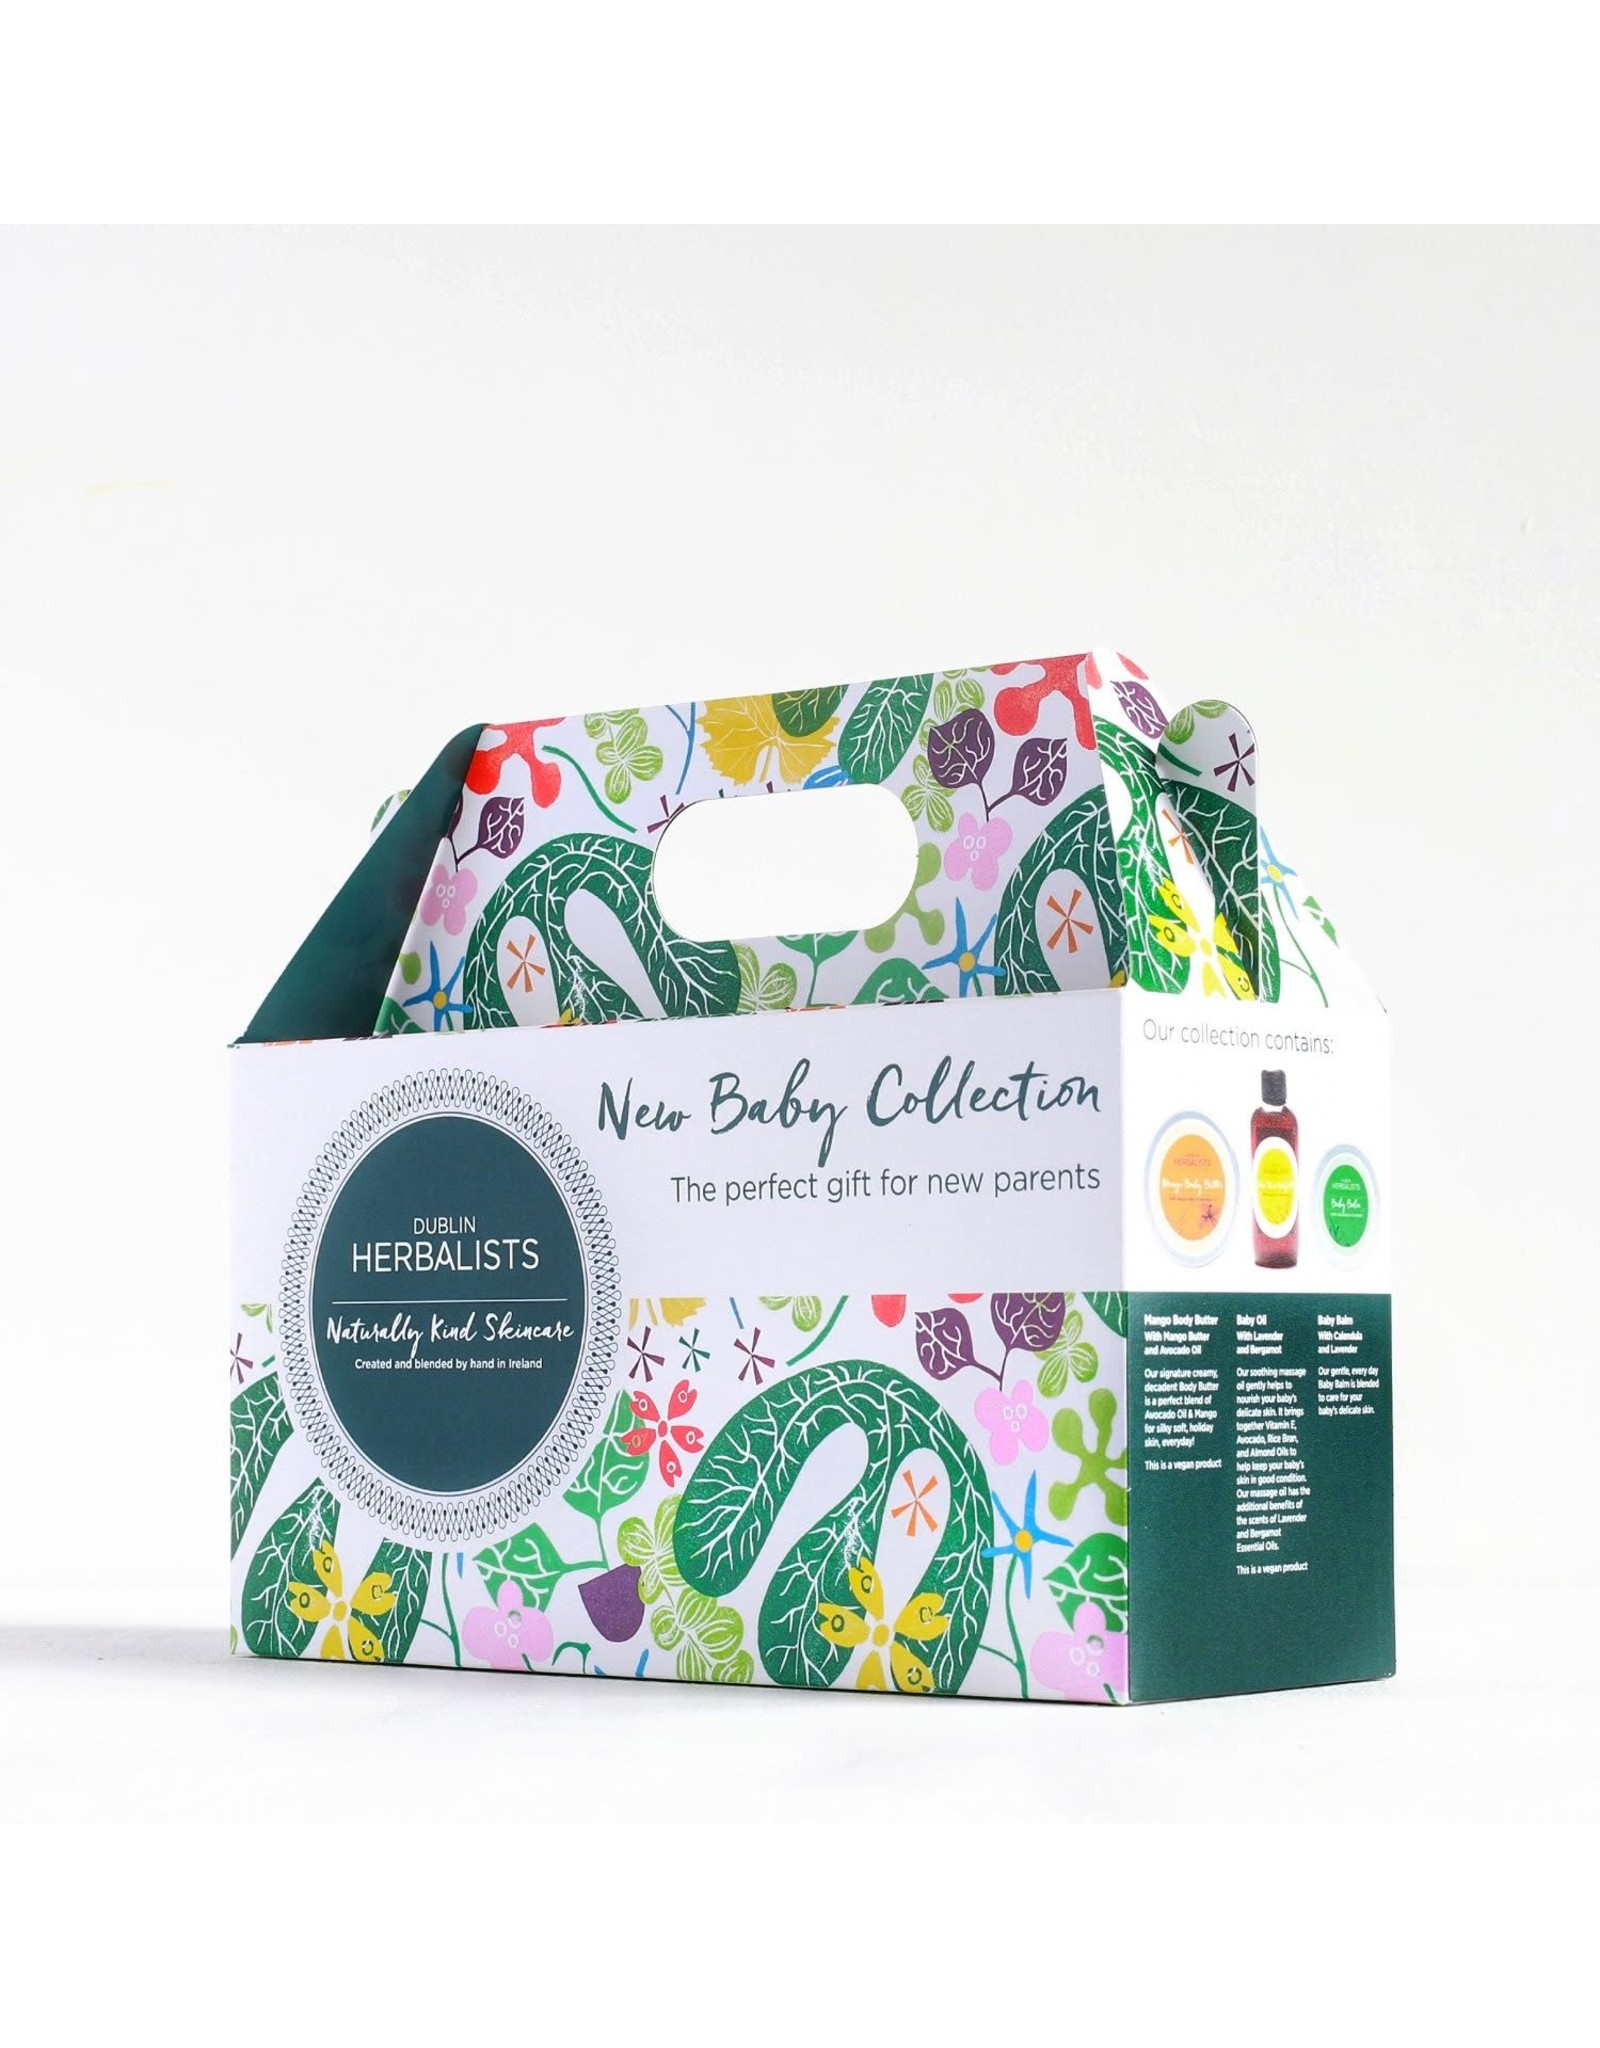 Dublin Herbalists New Baby Collection Gift Box by Dublin Herbalists